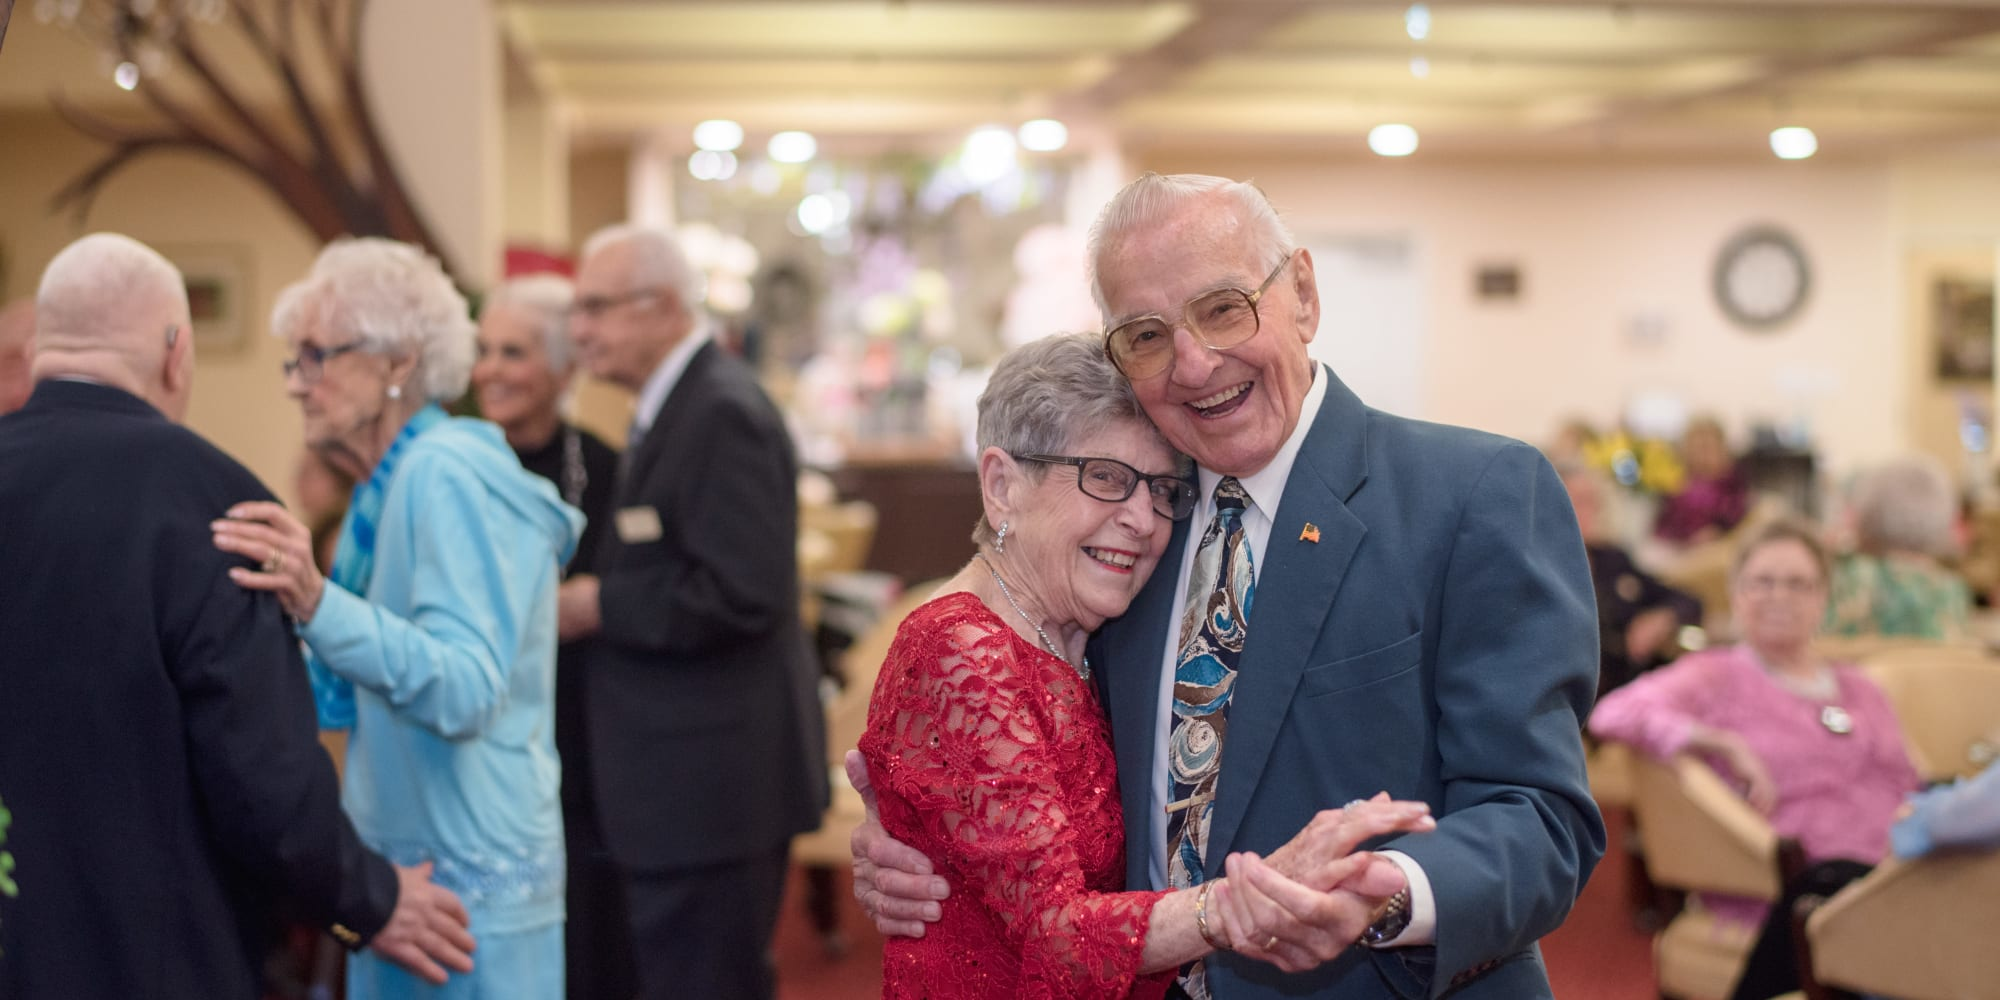 A happy couple dancing together at The Savoy Gracious Retirement Living in Winter Springs, Florida